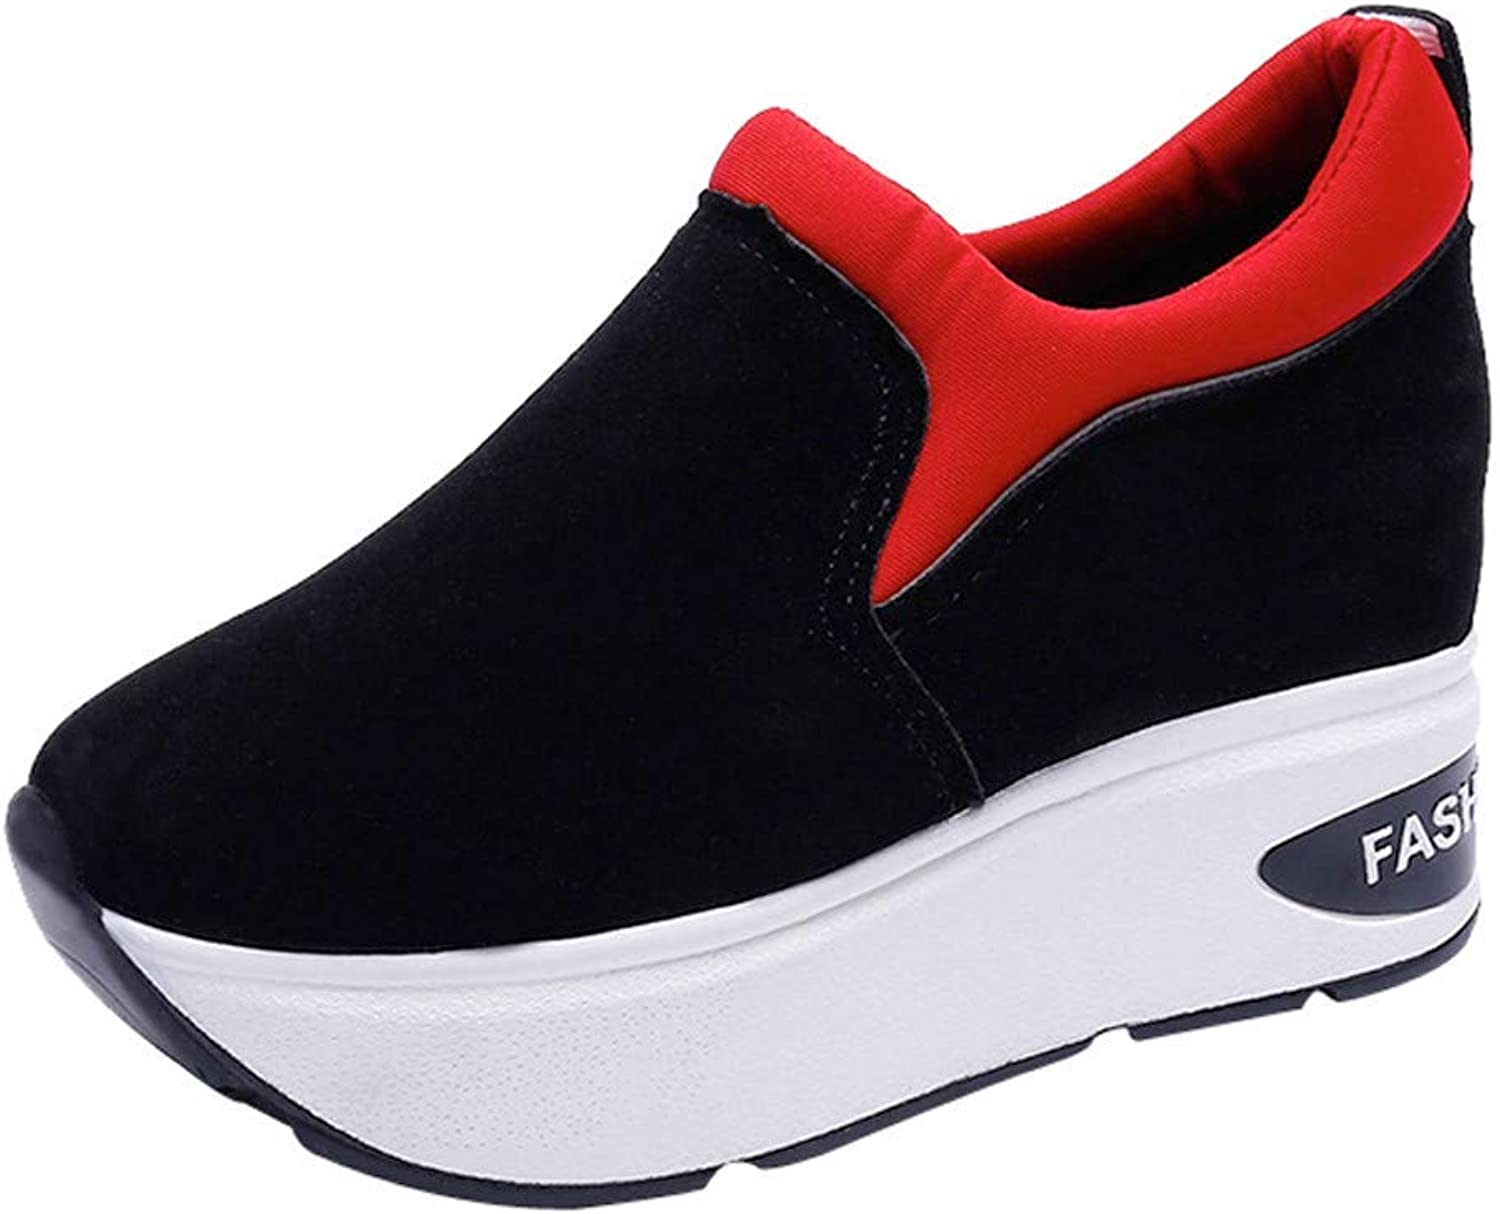 GouuoHi Womens Sport Women Sport shoes Outdoor Suede Casual Thick Soled Enhance shoes Shake shoes Fashion Cosy Wild Casual Quality Super Elegant Leisure for Womens